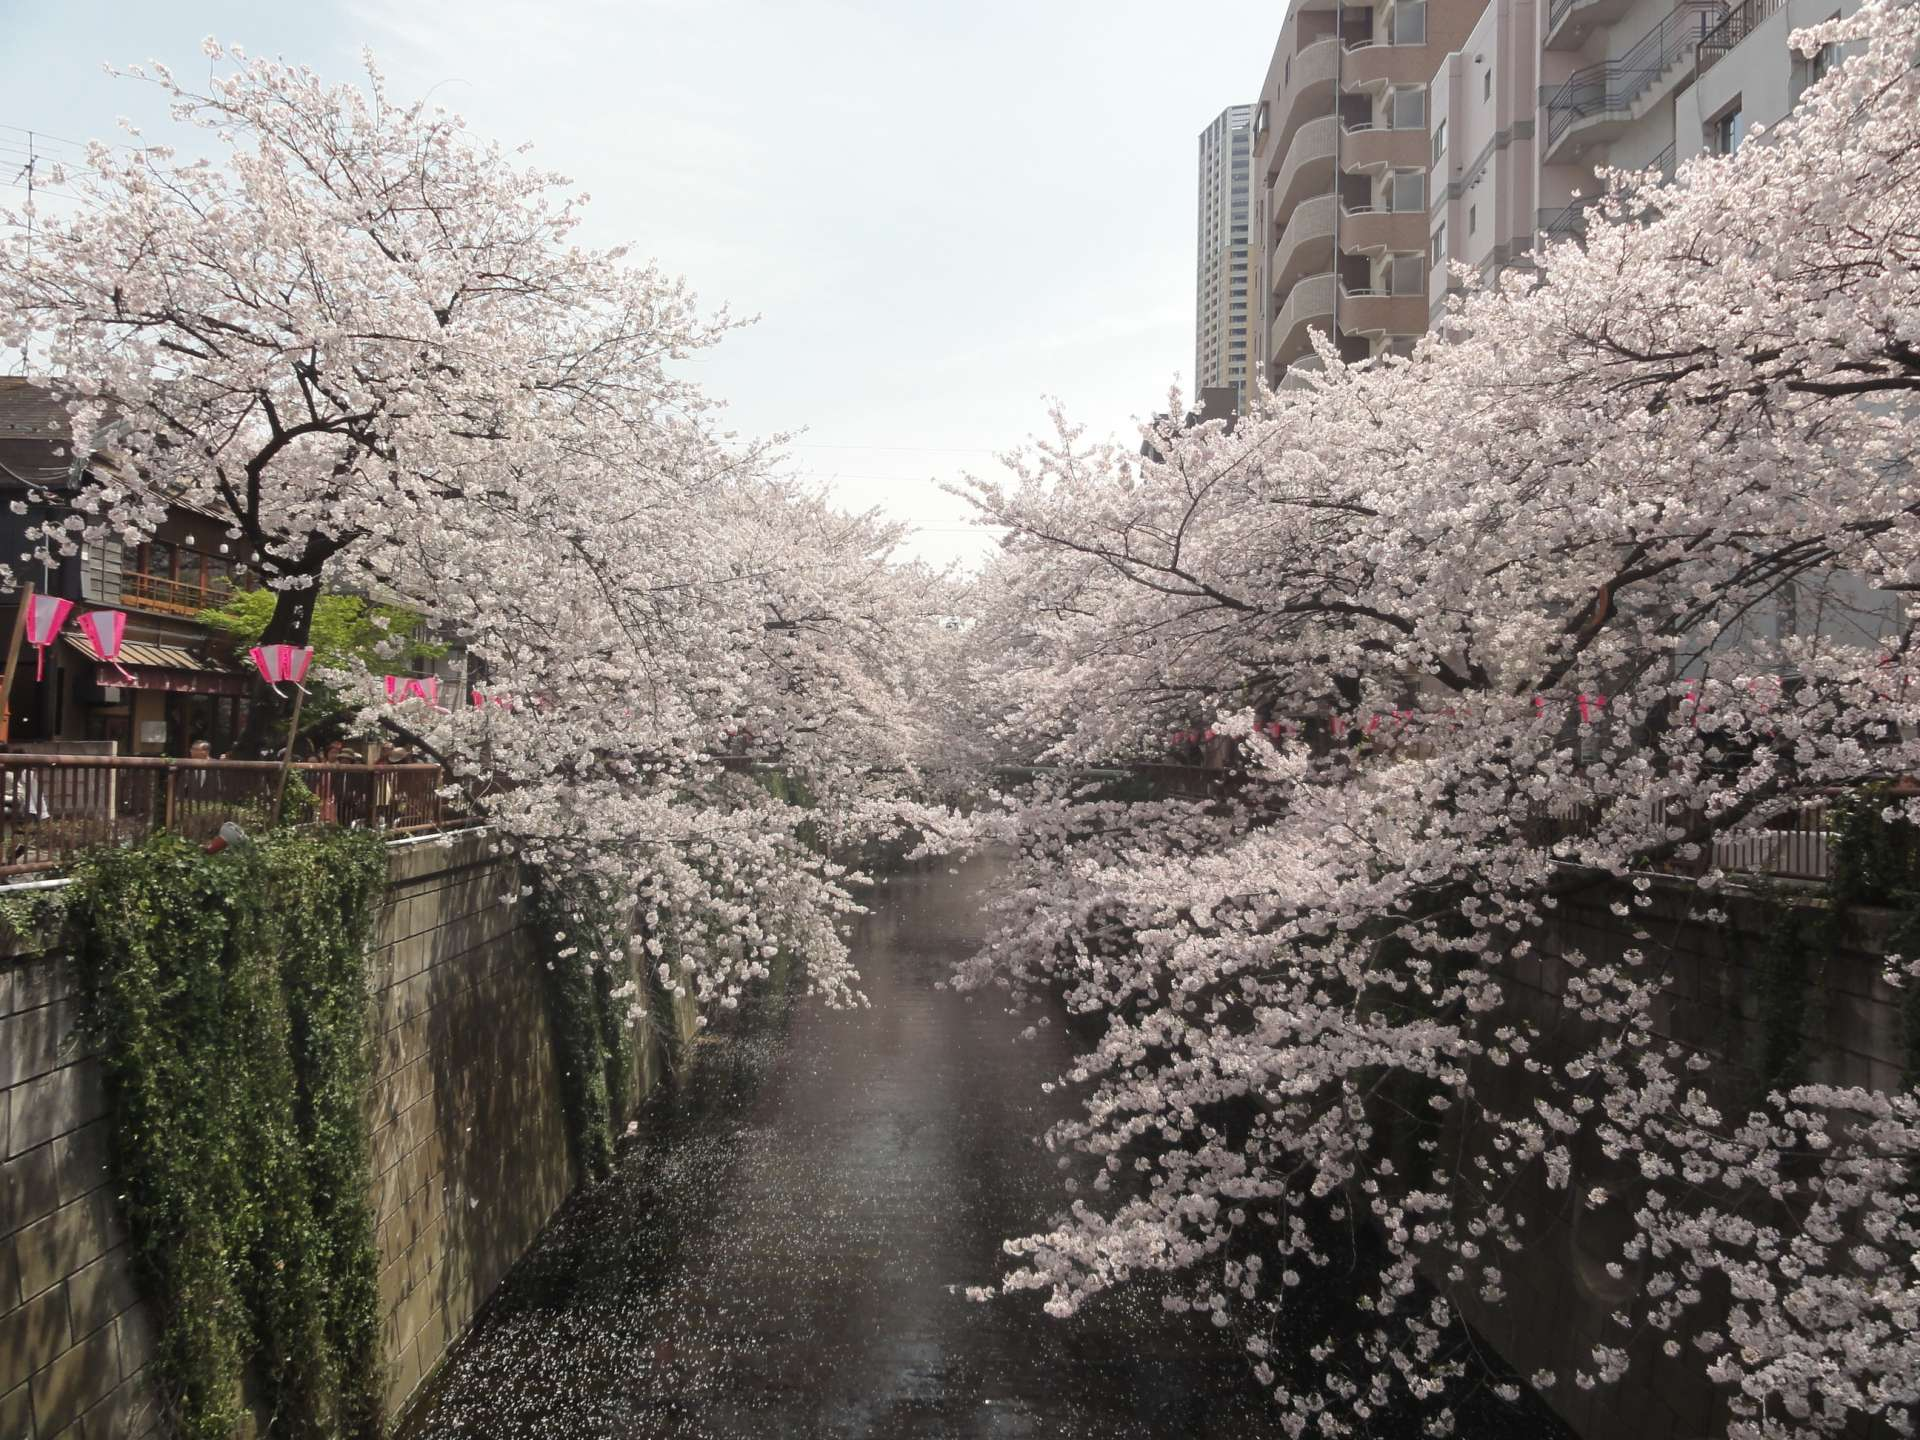 Cherry blossoms along the Meguro River, a natural tunnel of cherry blossoms on a river